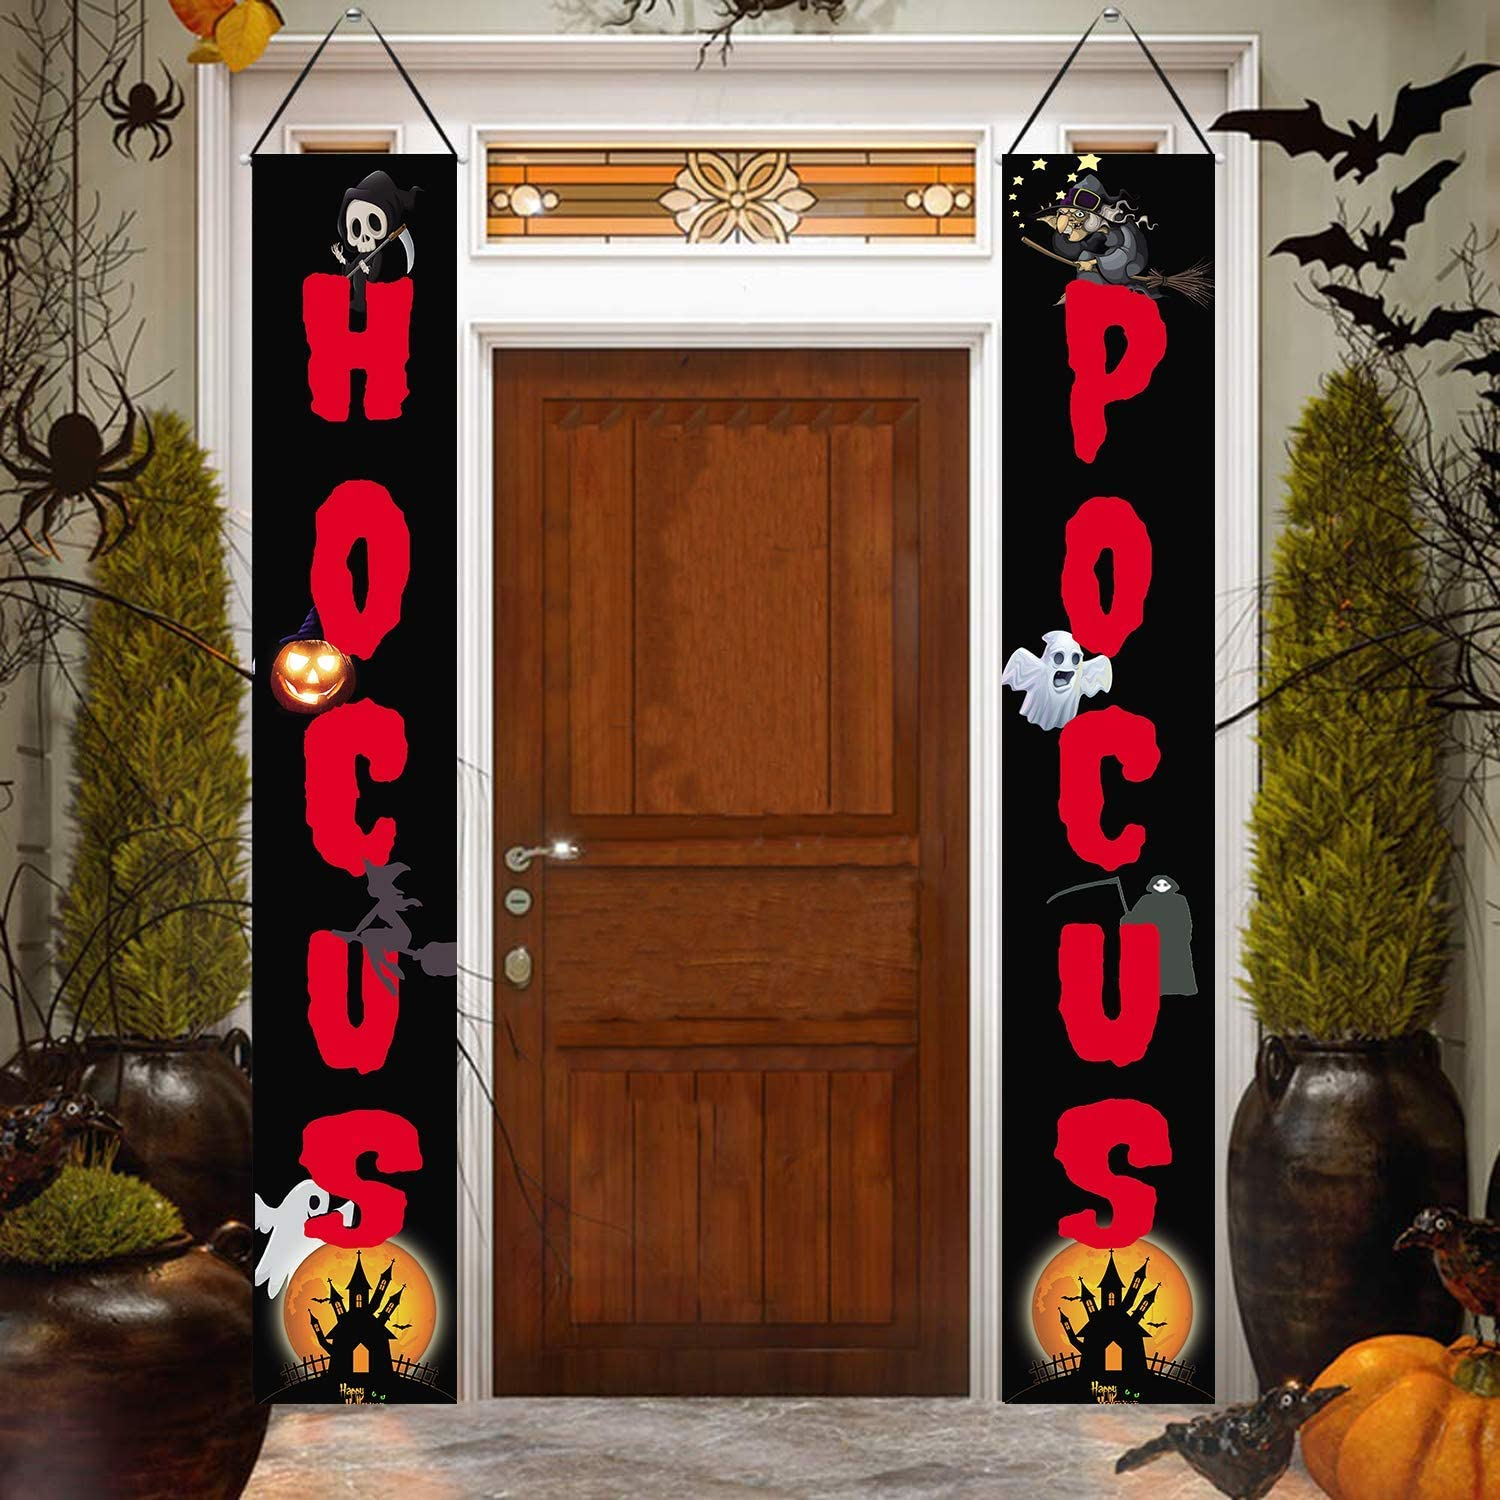 Hallowmas Porch Sign Halloween Banners Hallowmas Hanging Sign Halloween Decorations Indoor Outdoor for Home Wall Front Door Apartment Party